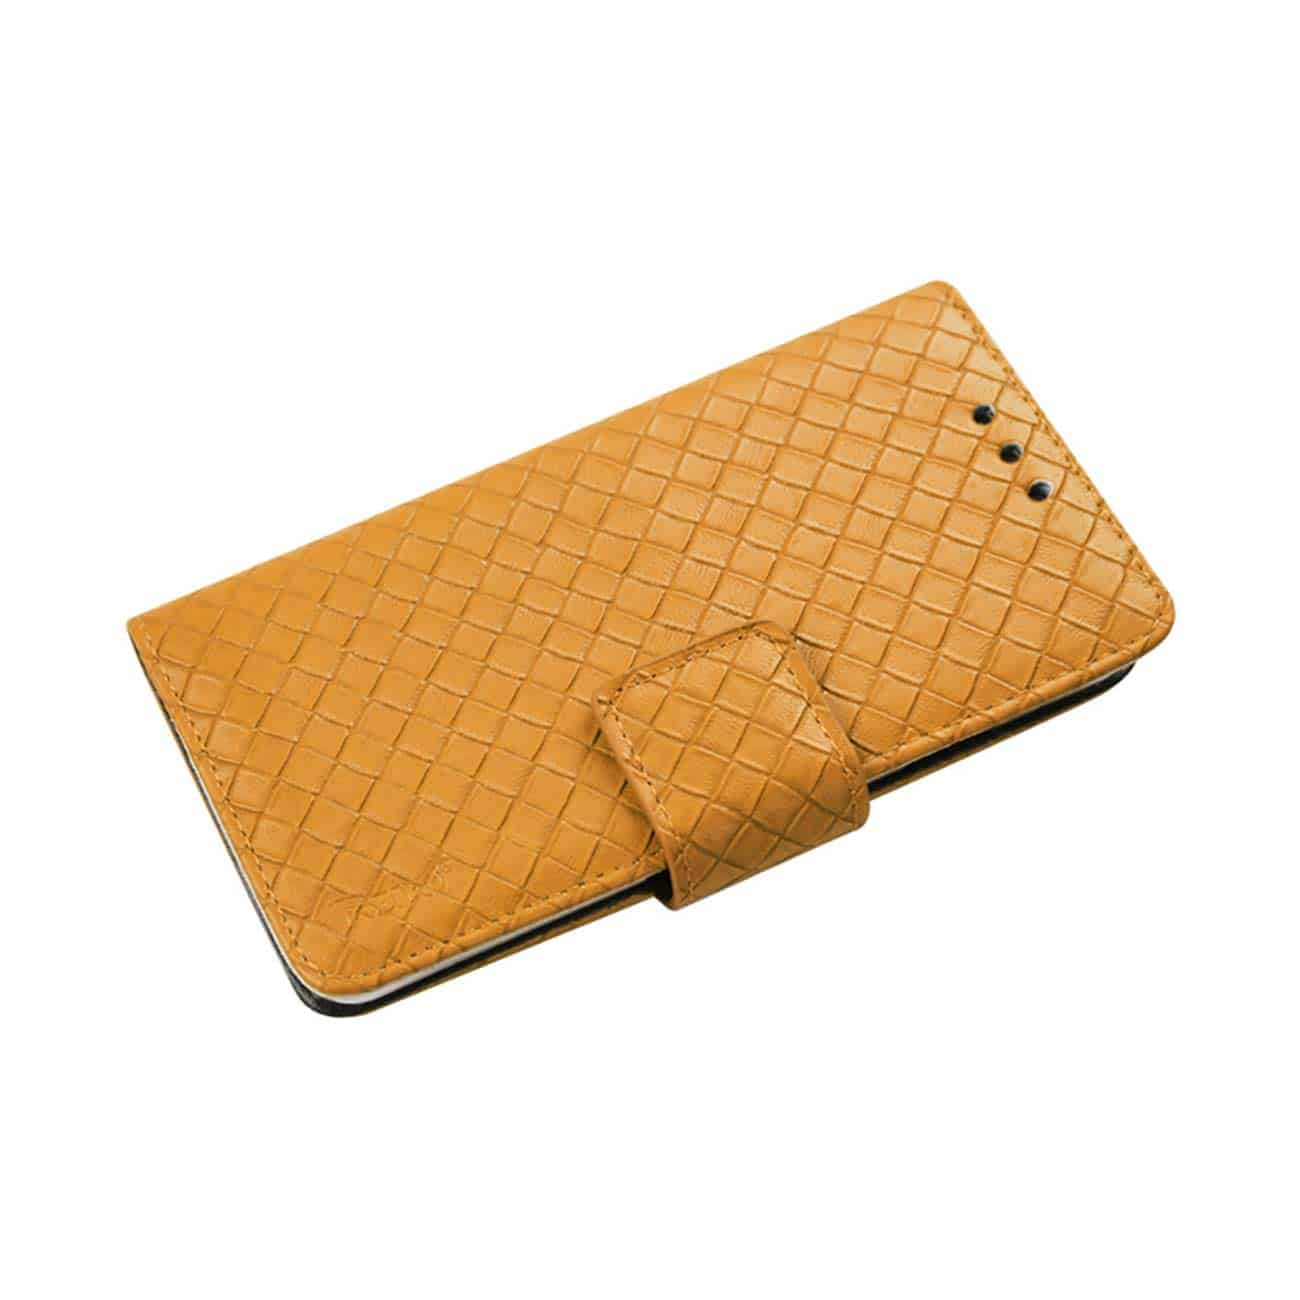 IPHONE 6 BRAIDED WALLET CASE IN YELLOW